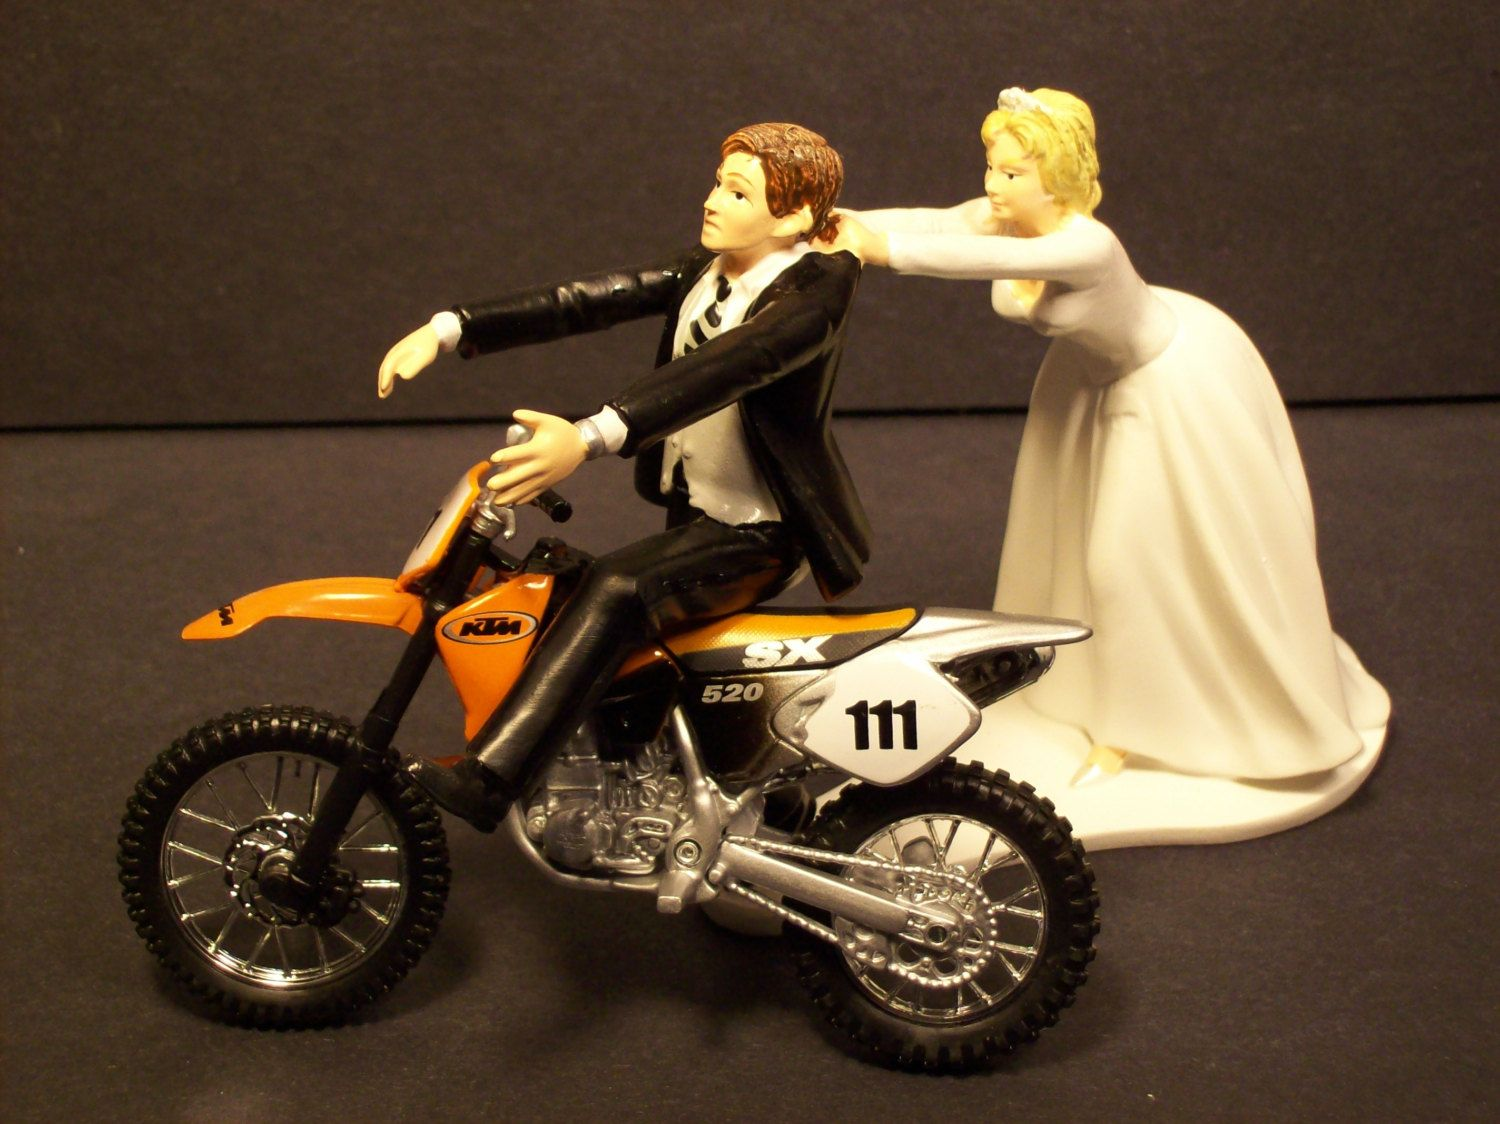 small resolution of come back motorcycle ktm orange 520 sx dirt bike bride and groom funny bike wedding cake topper 67 99 via etsy